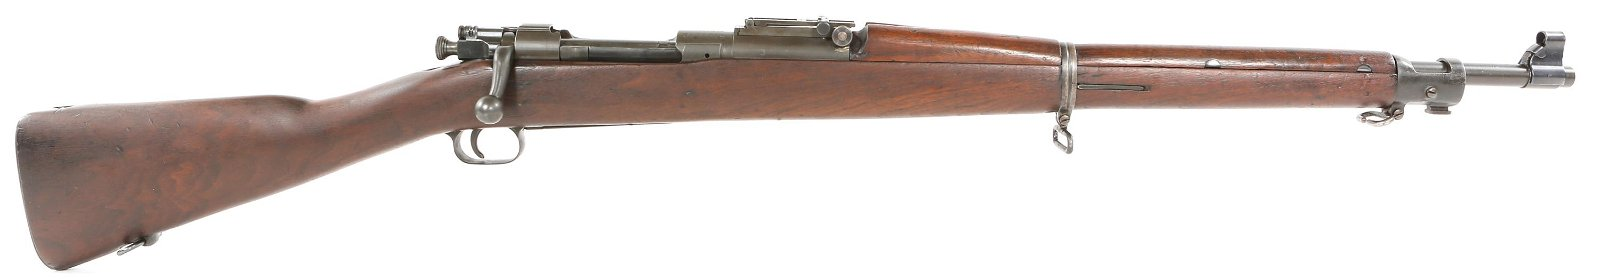 US SPRINGFIELD MODEL 1903 RIFLE .30-06 CALIBER